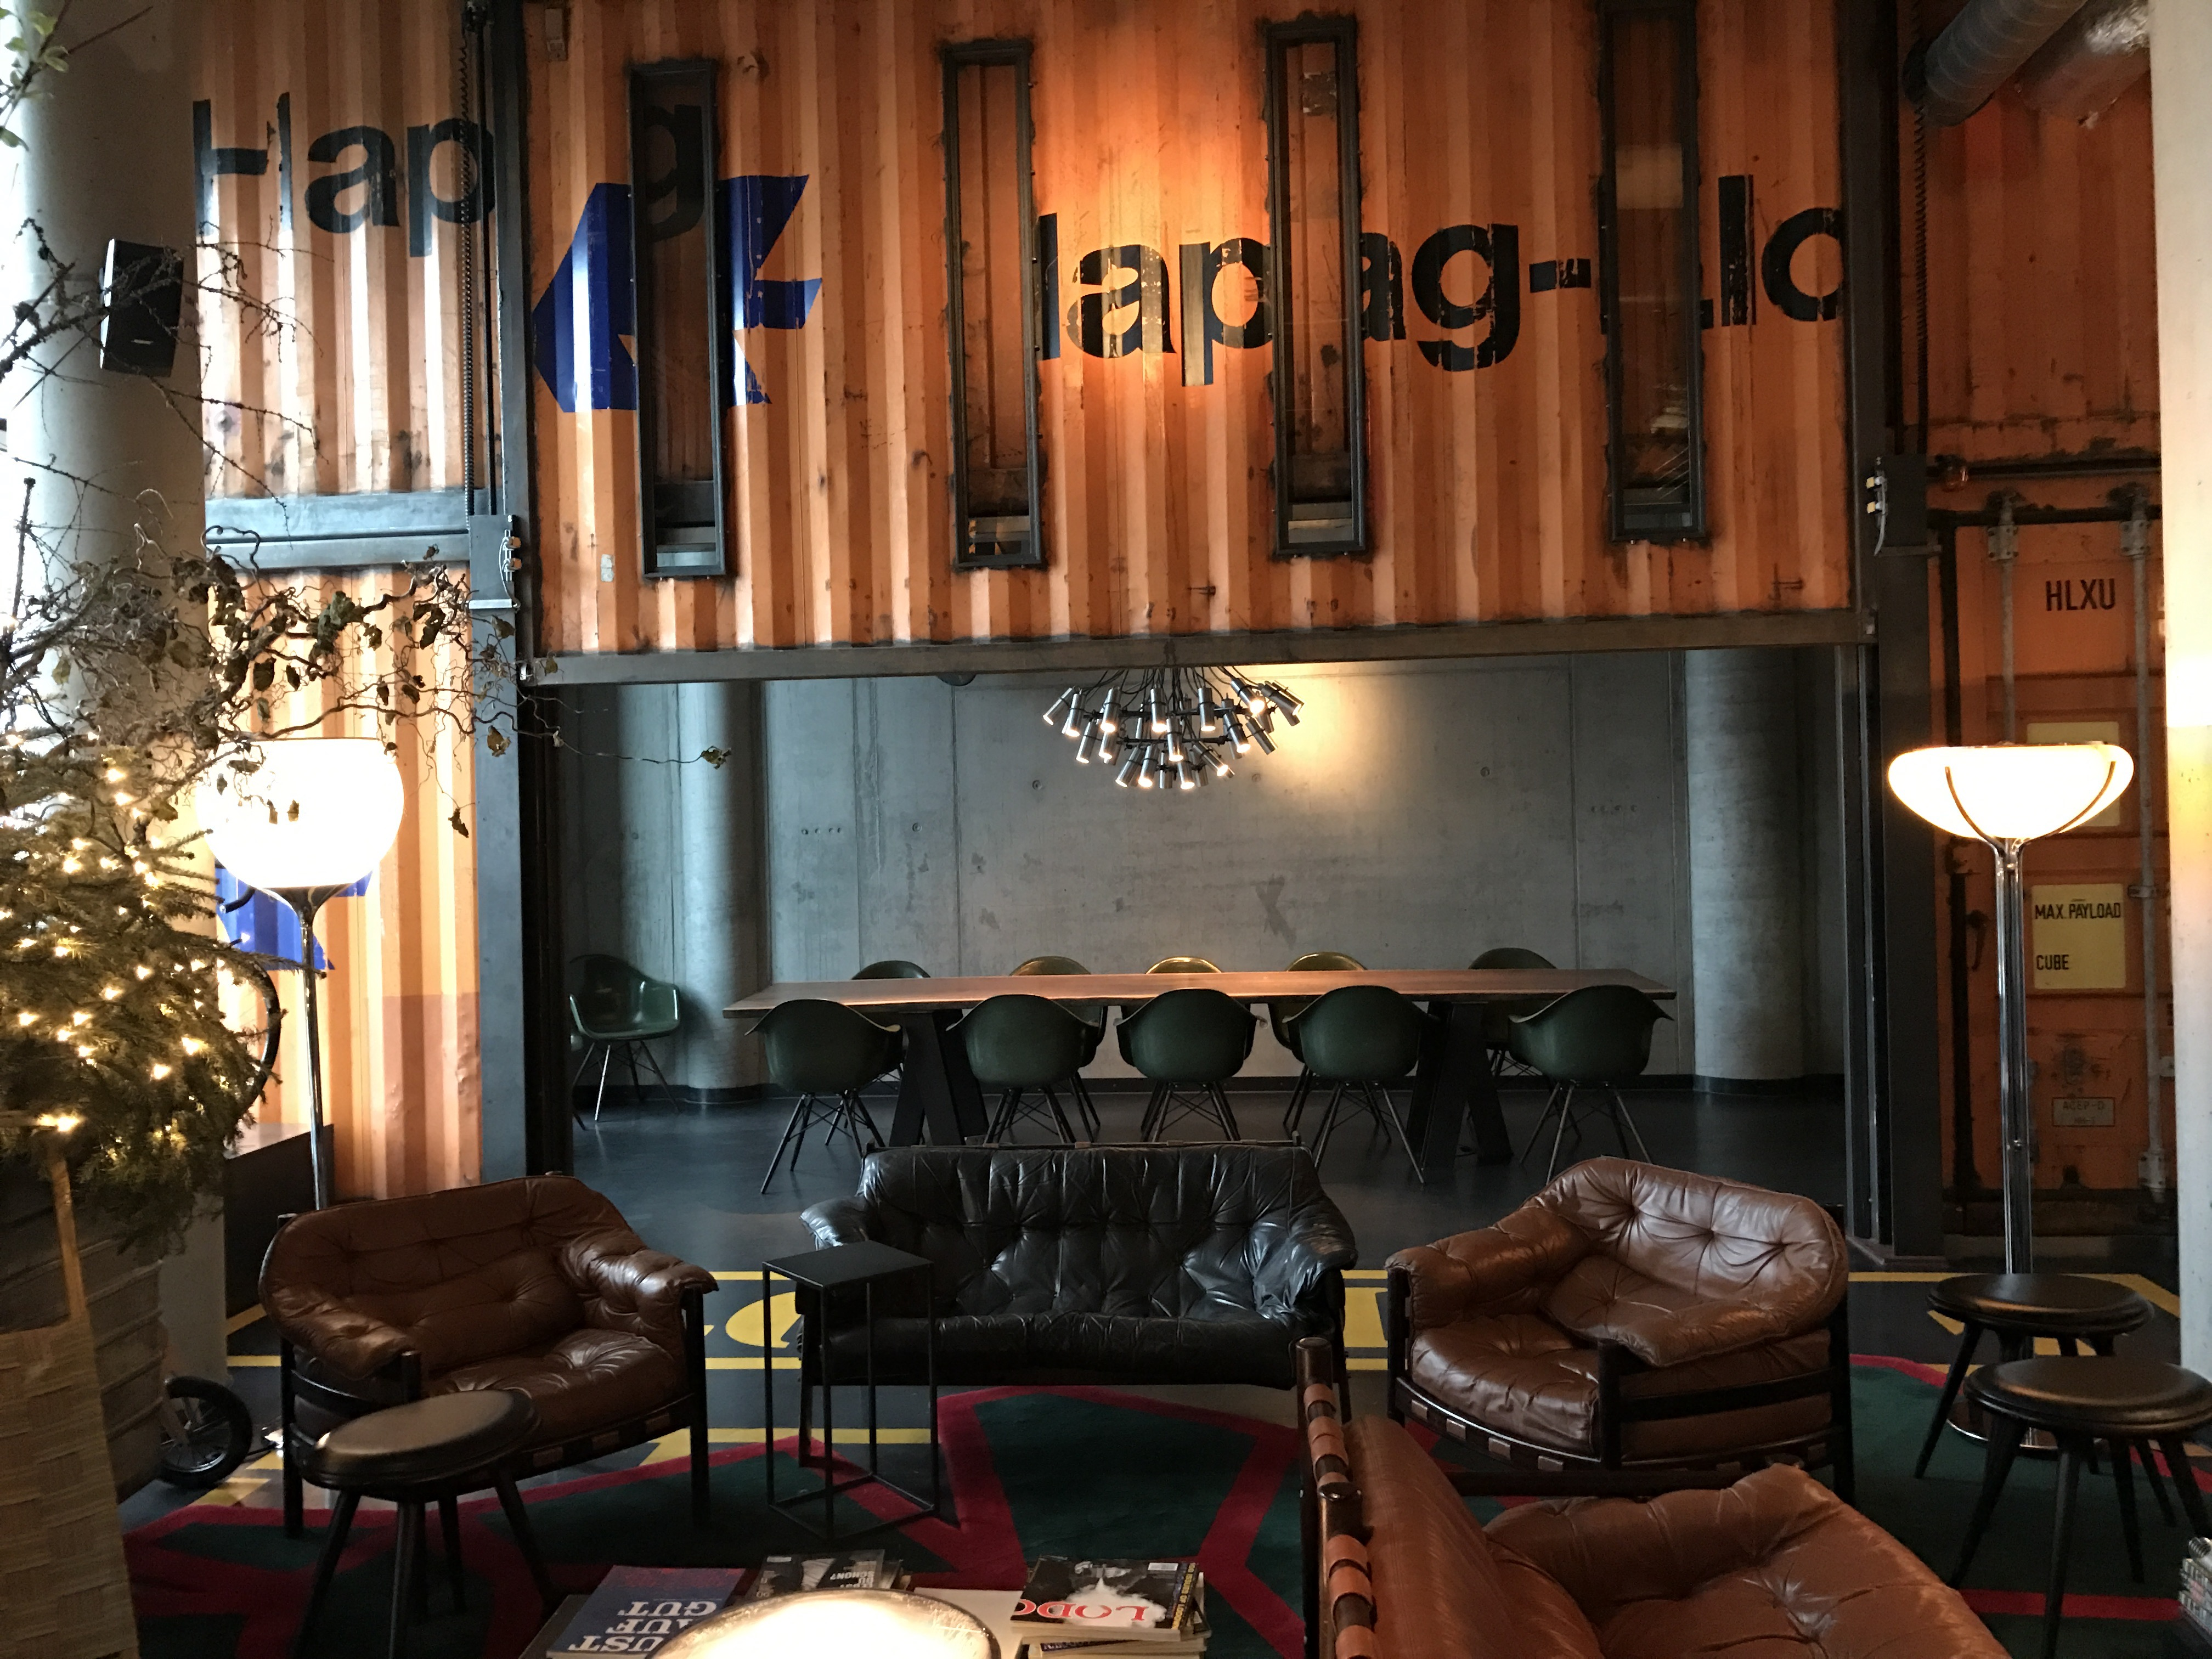 25hours hotel hamburg hafencity eingang container interior style blogger